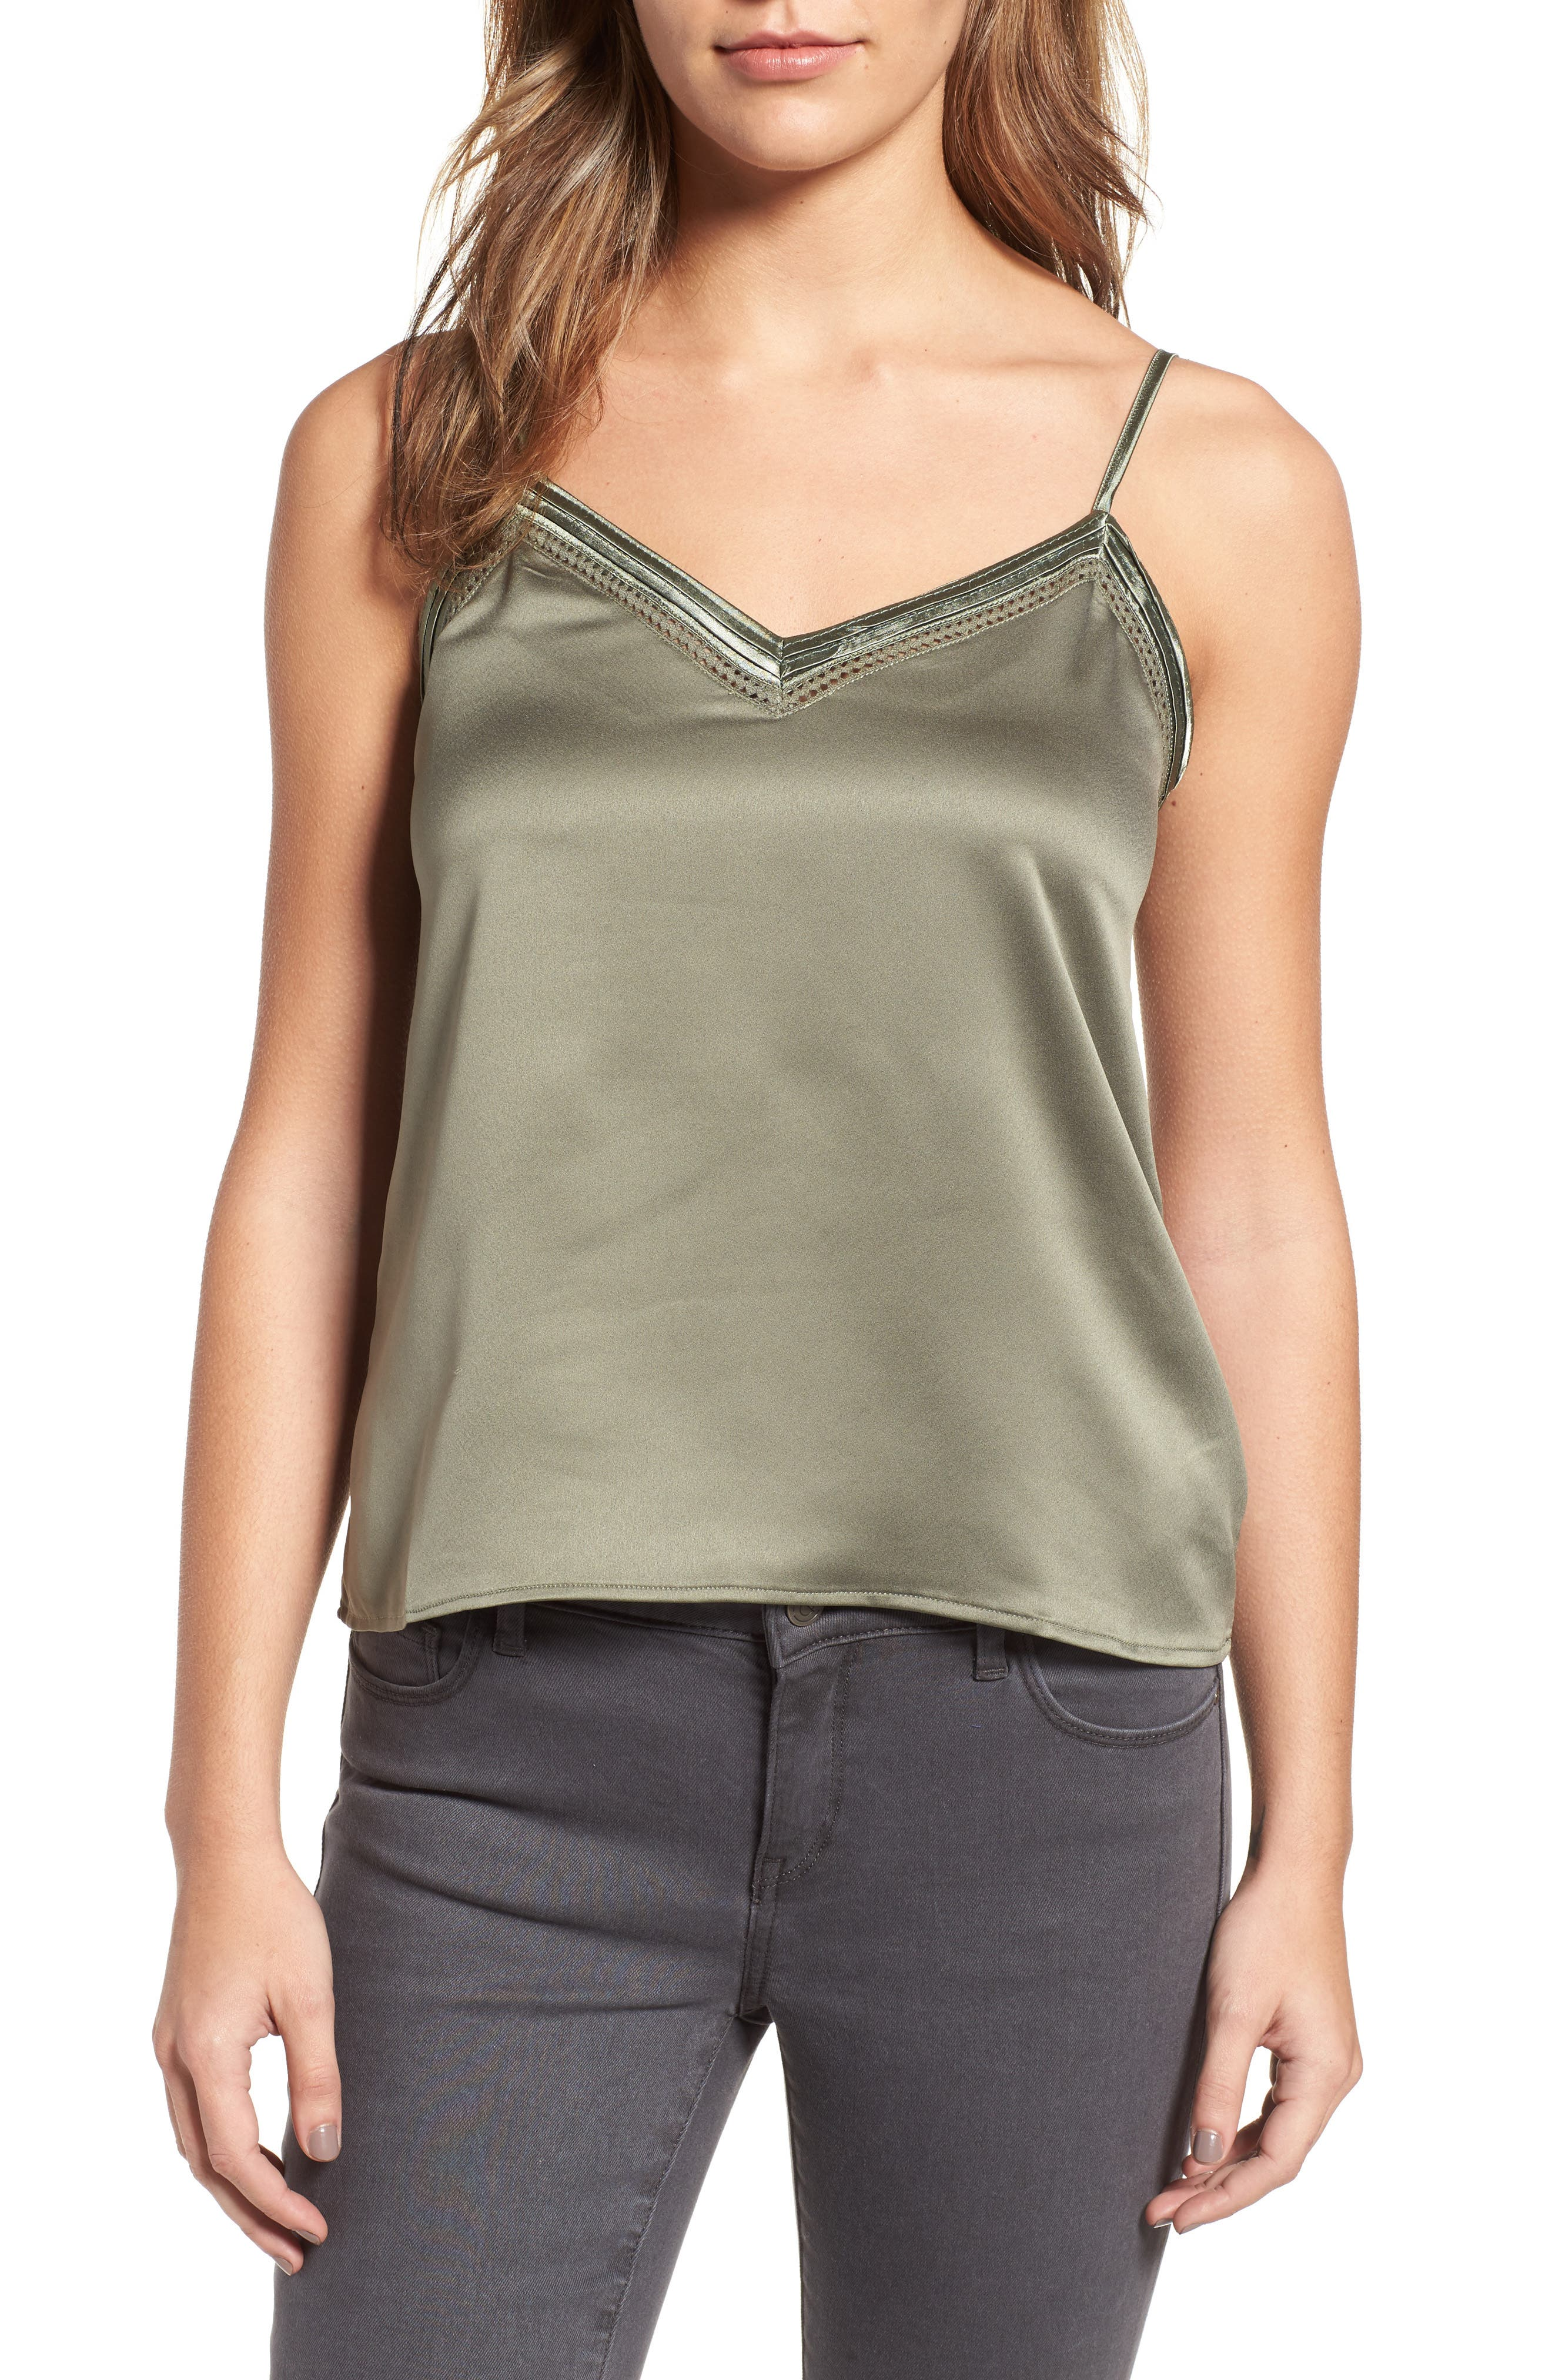 Alternate Image 1 Selected - Sincerely Jules Satin Camisole